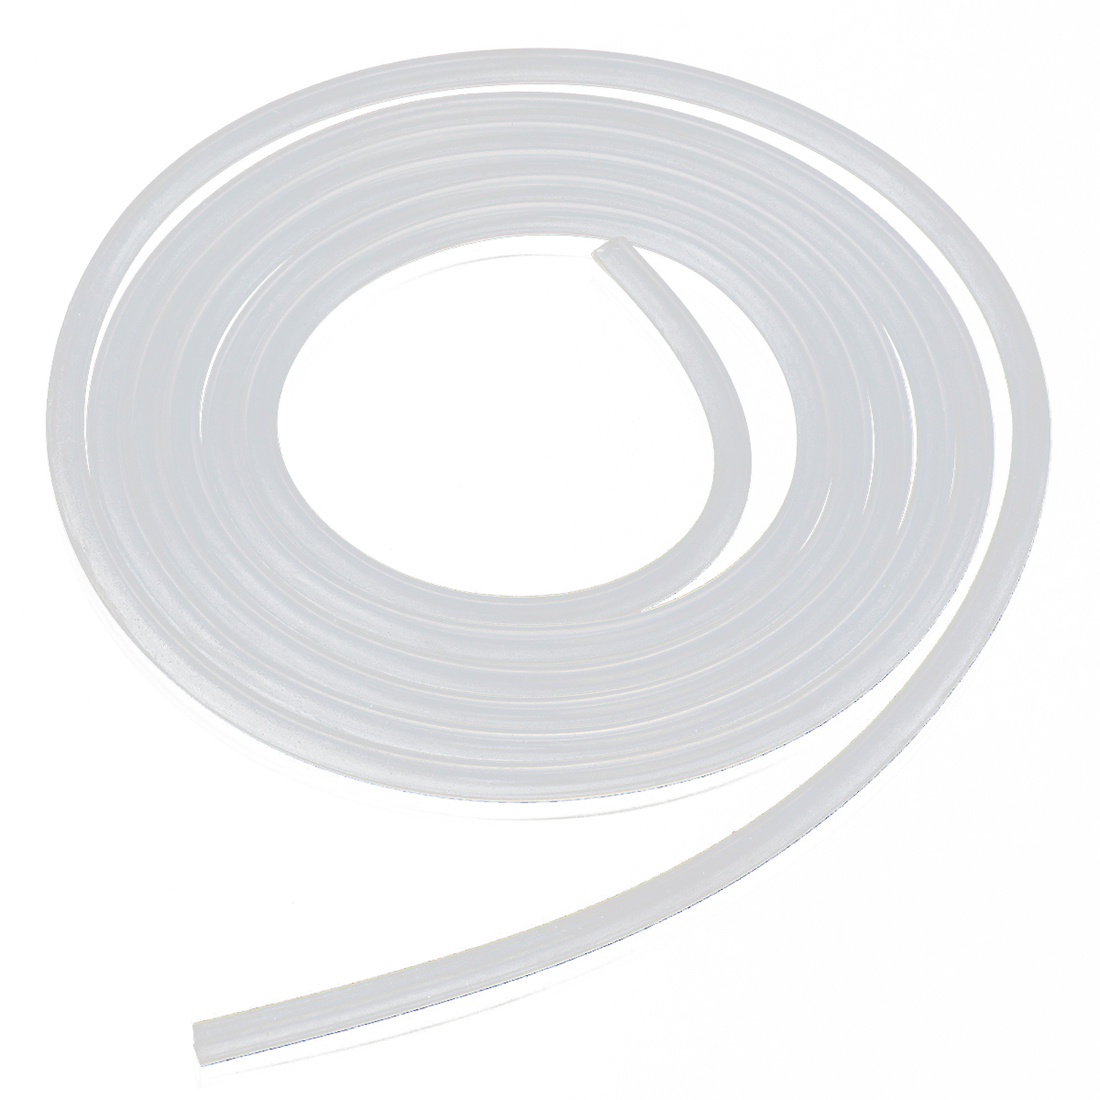 2 meter silicone tube silicone tube pressure hose highly flexible 4 * 6mm soft non-toxic food grade silicone hose High Quality воздухозаборник silicone vacuum hose 2